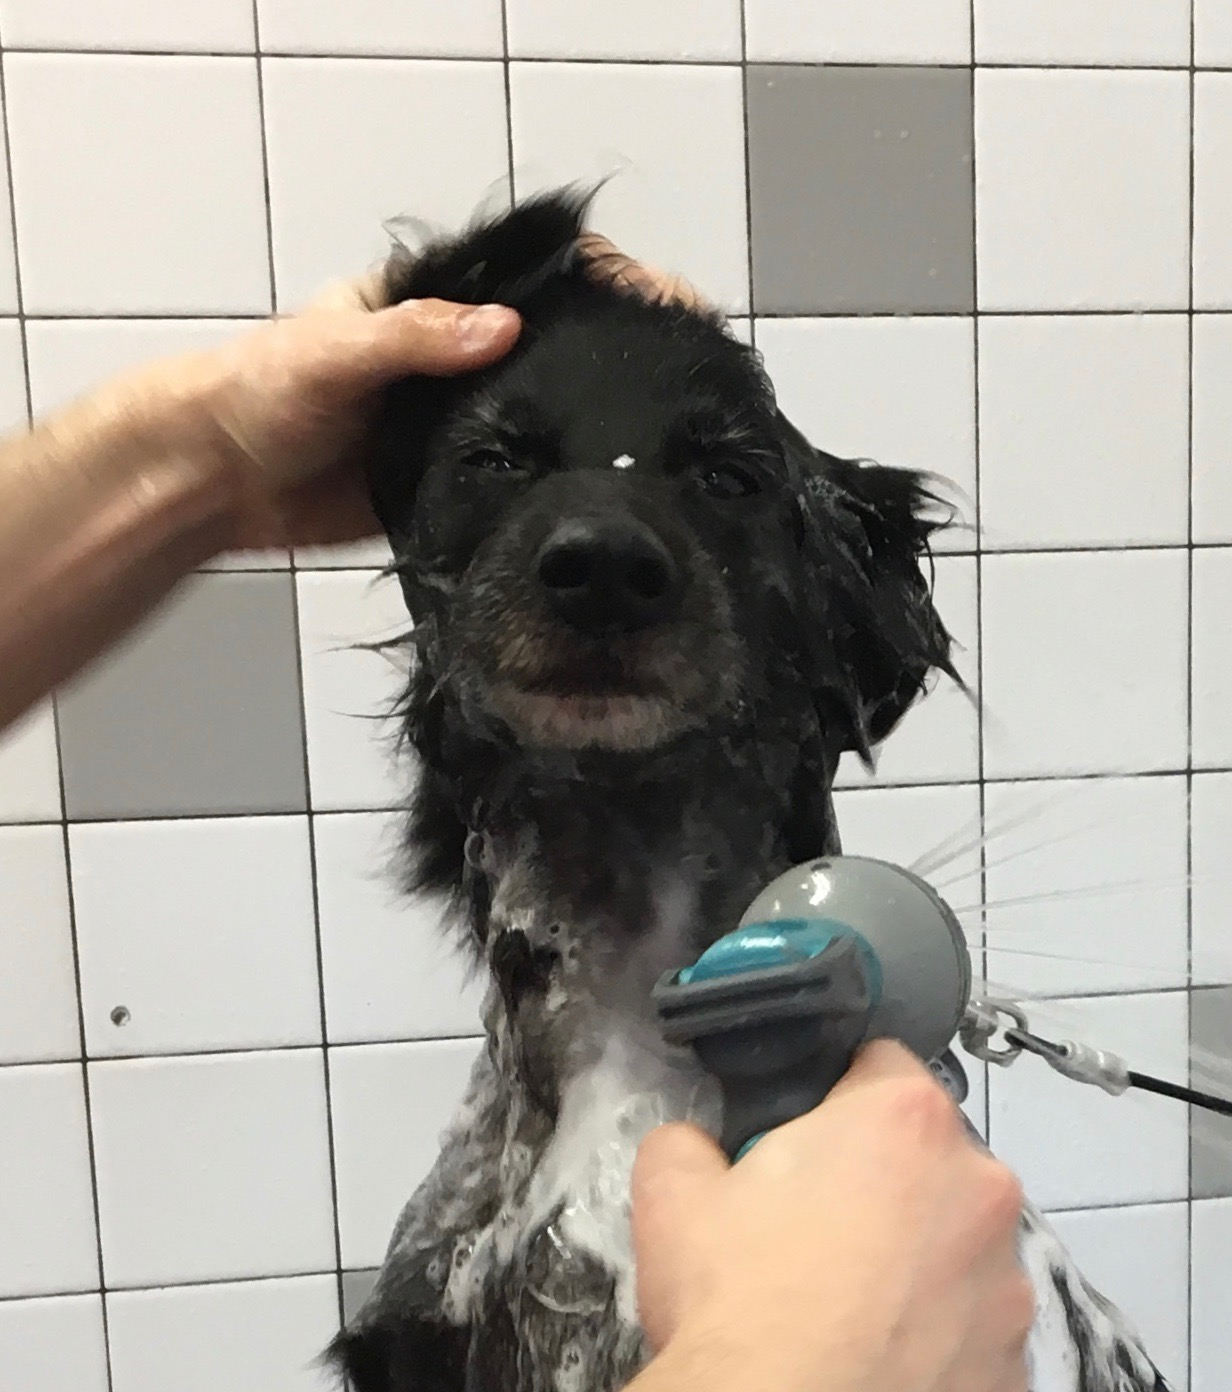 The Saddest, Most Disgruntled Wet Border Collie In The Entire Universe